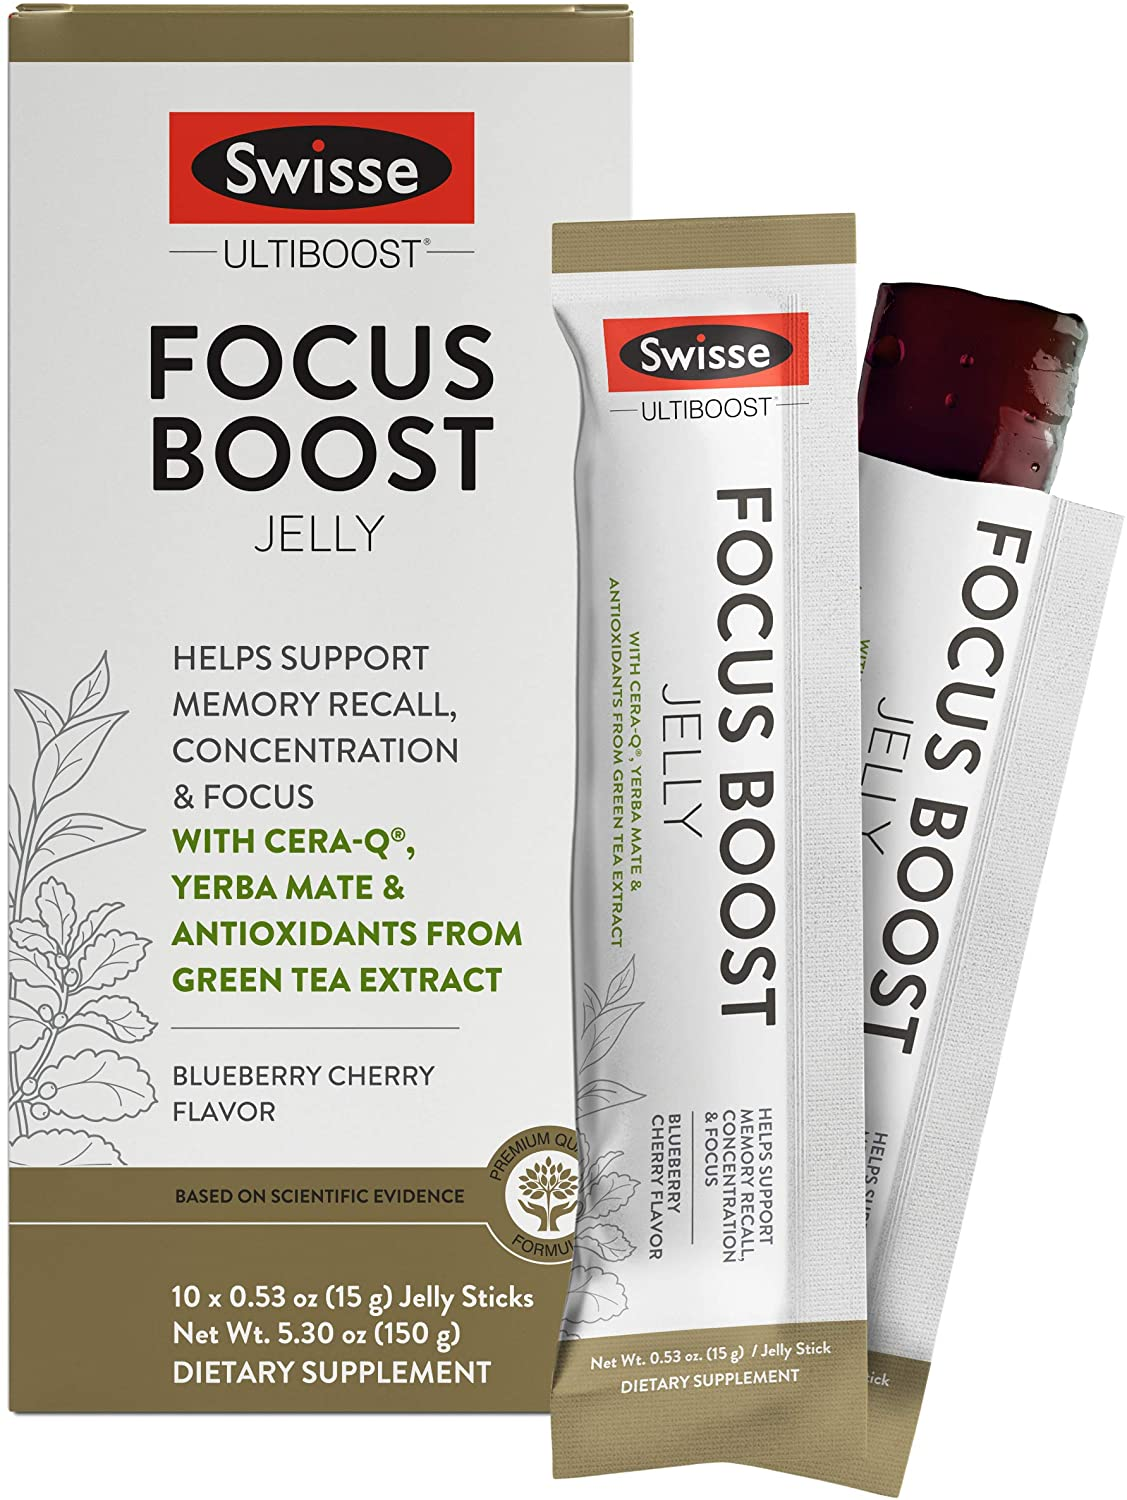 Swisse Ultiboost Focus Boost Jelly Sticks, Blueberry Cherry | Supports Brain Function, Memory Recall, & Concentration | Cera-Q, Yerba Mate, & Green Tea Antioxidants | Portable Jelly Sticks | 10 Count